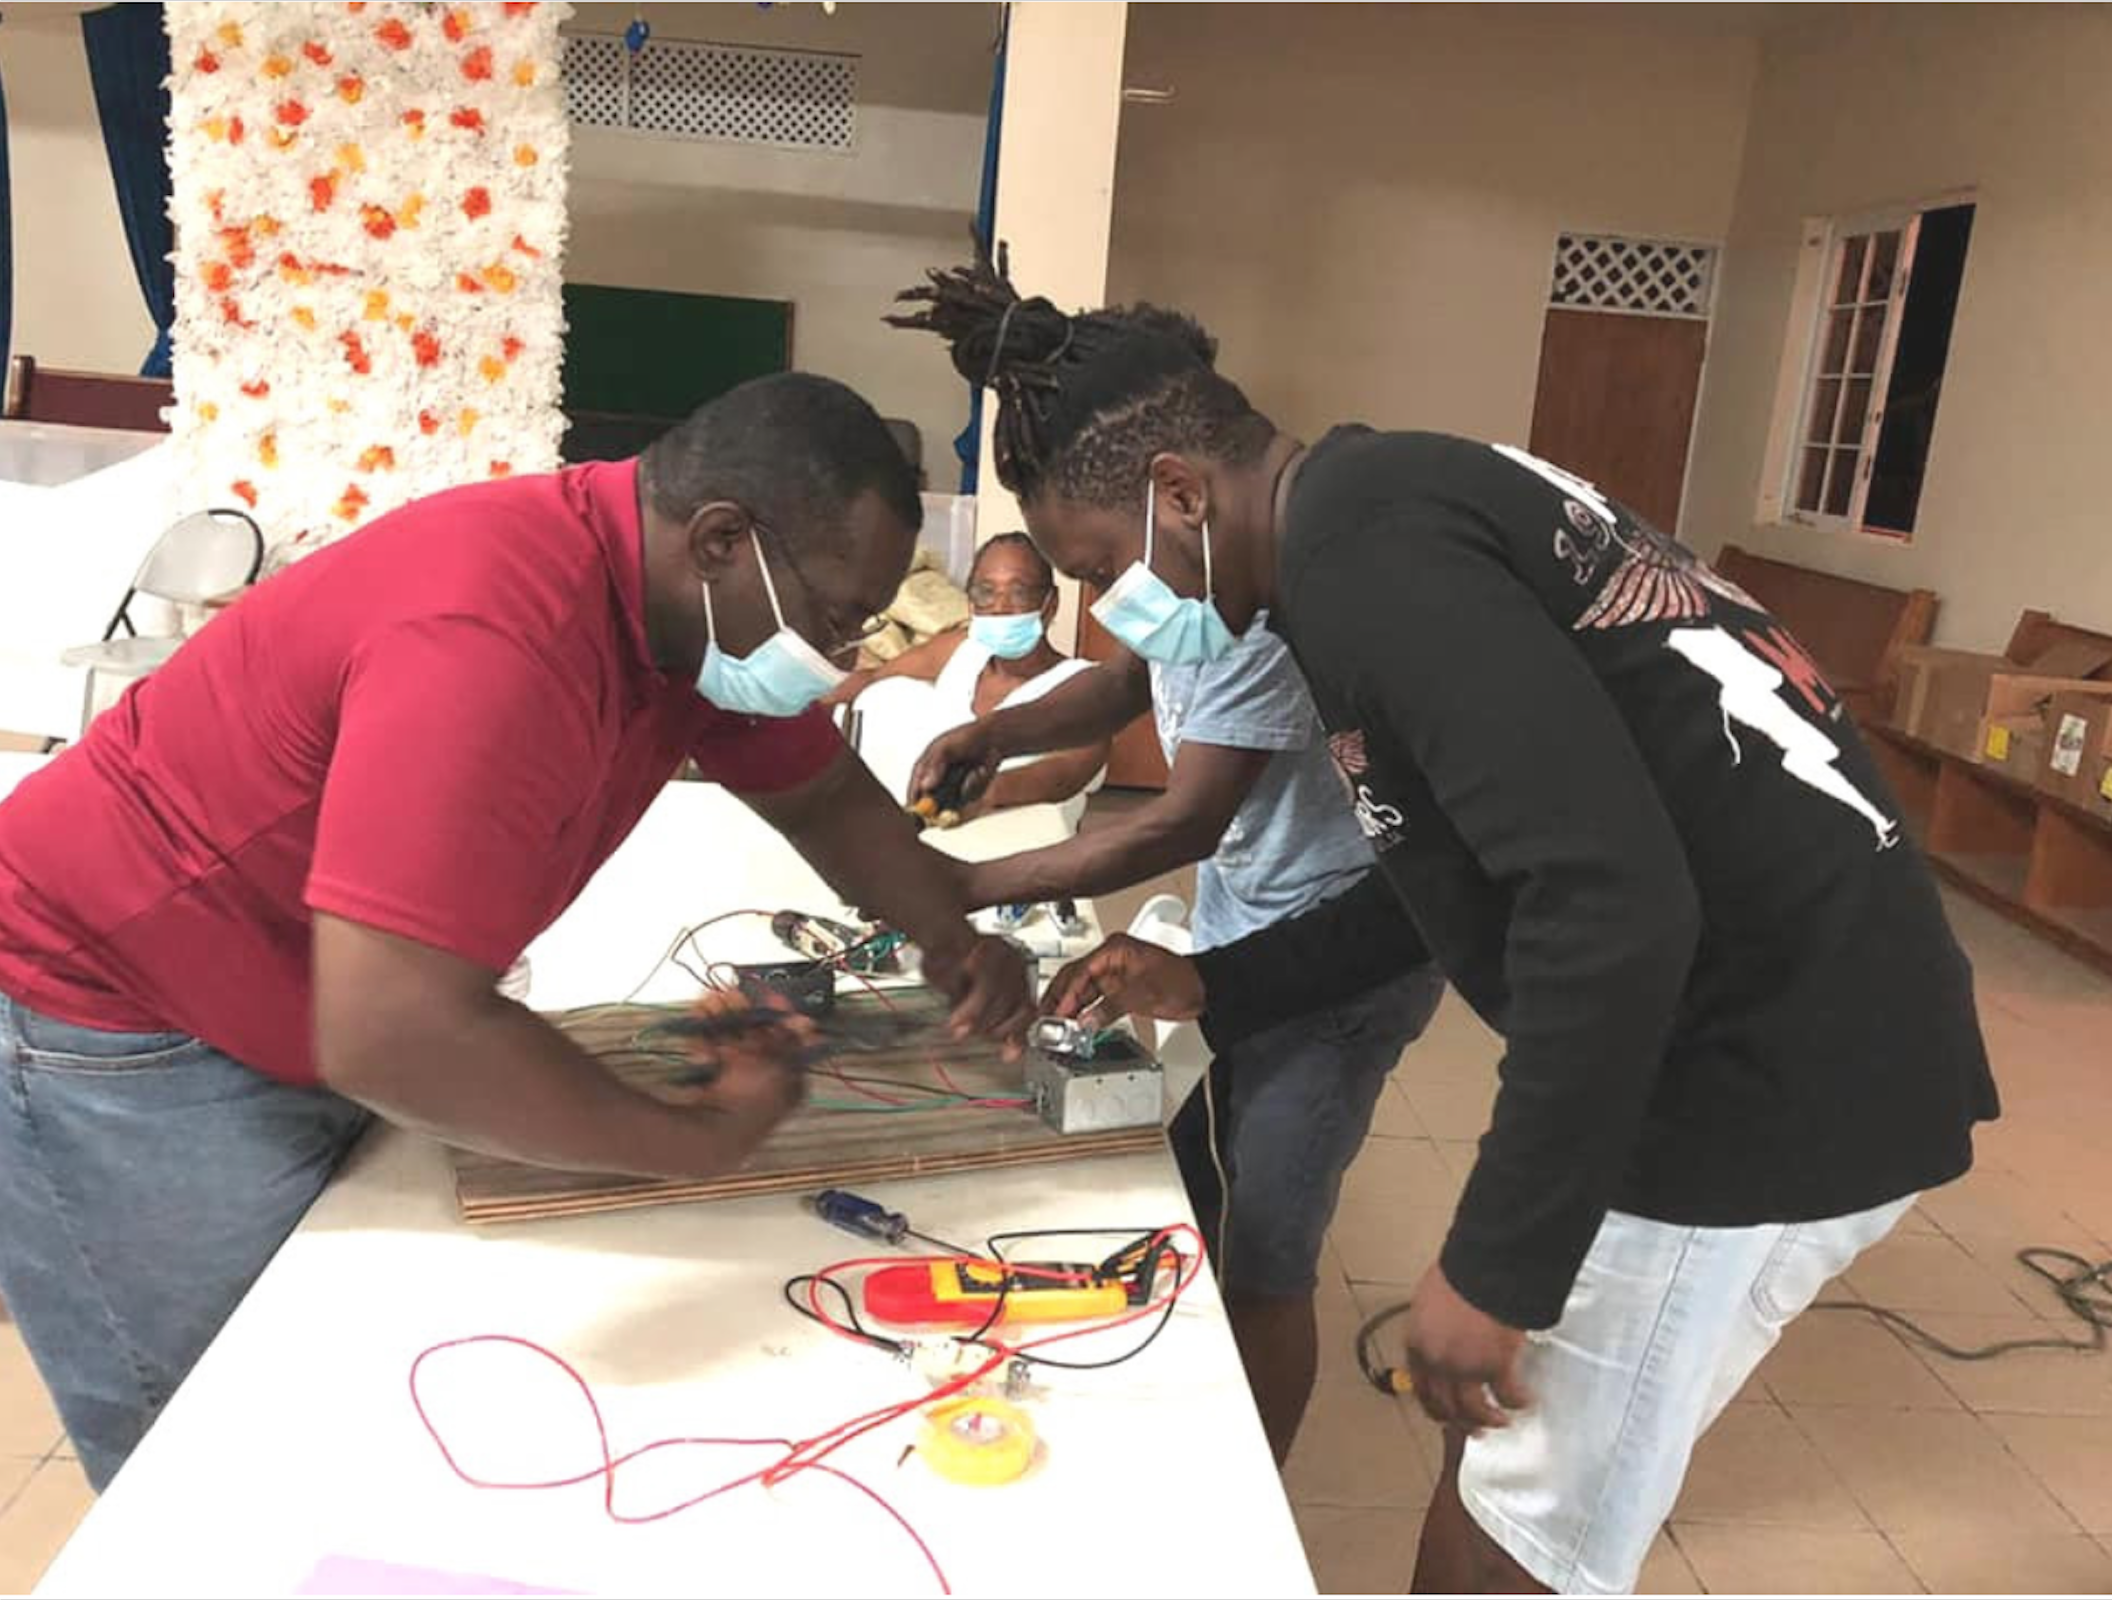 Adventist Church on Tortola Offers Free Electrical Maintenance Classes